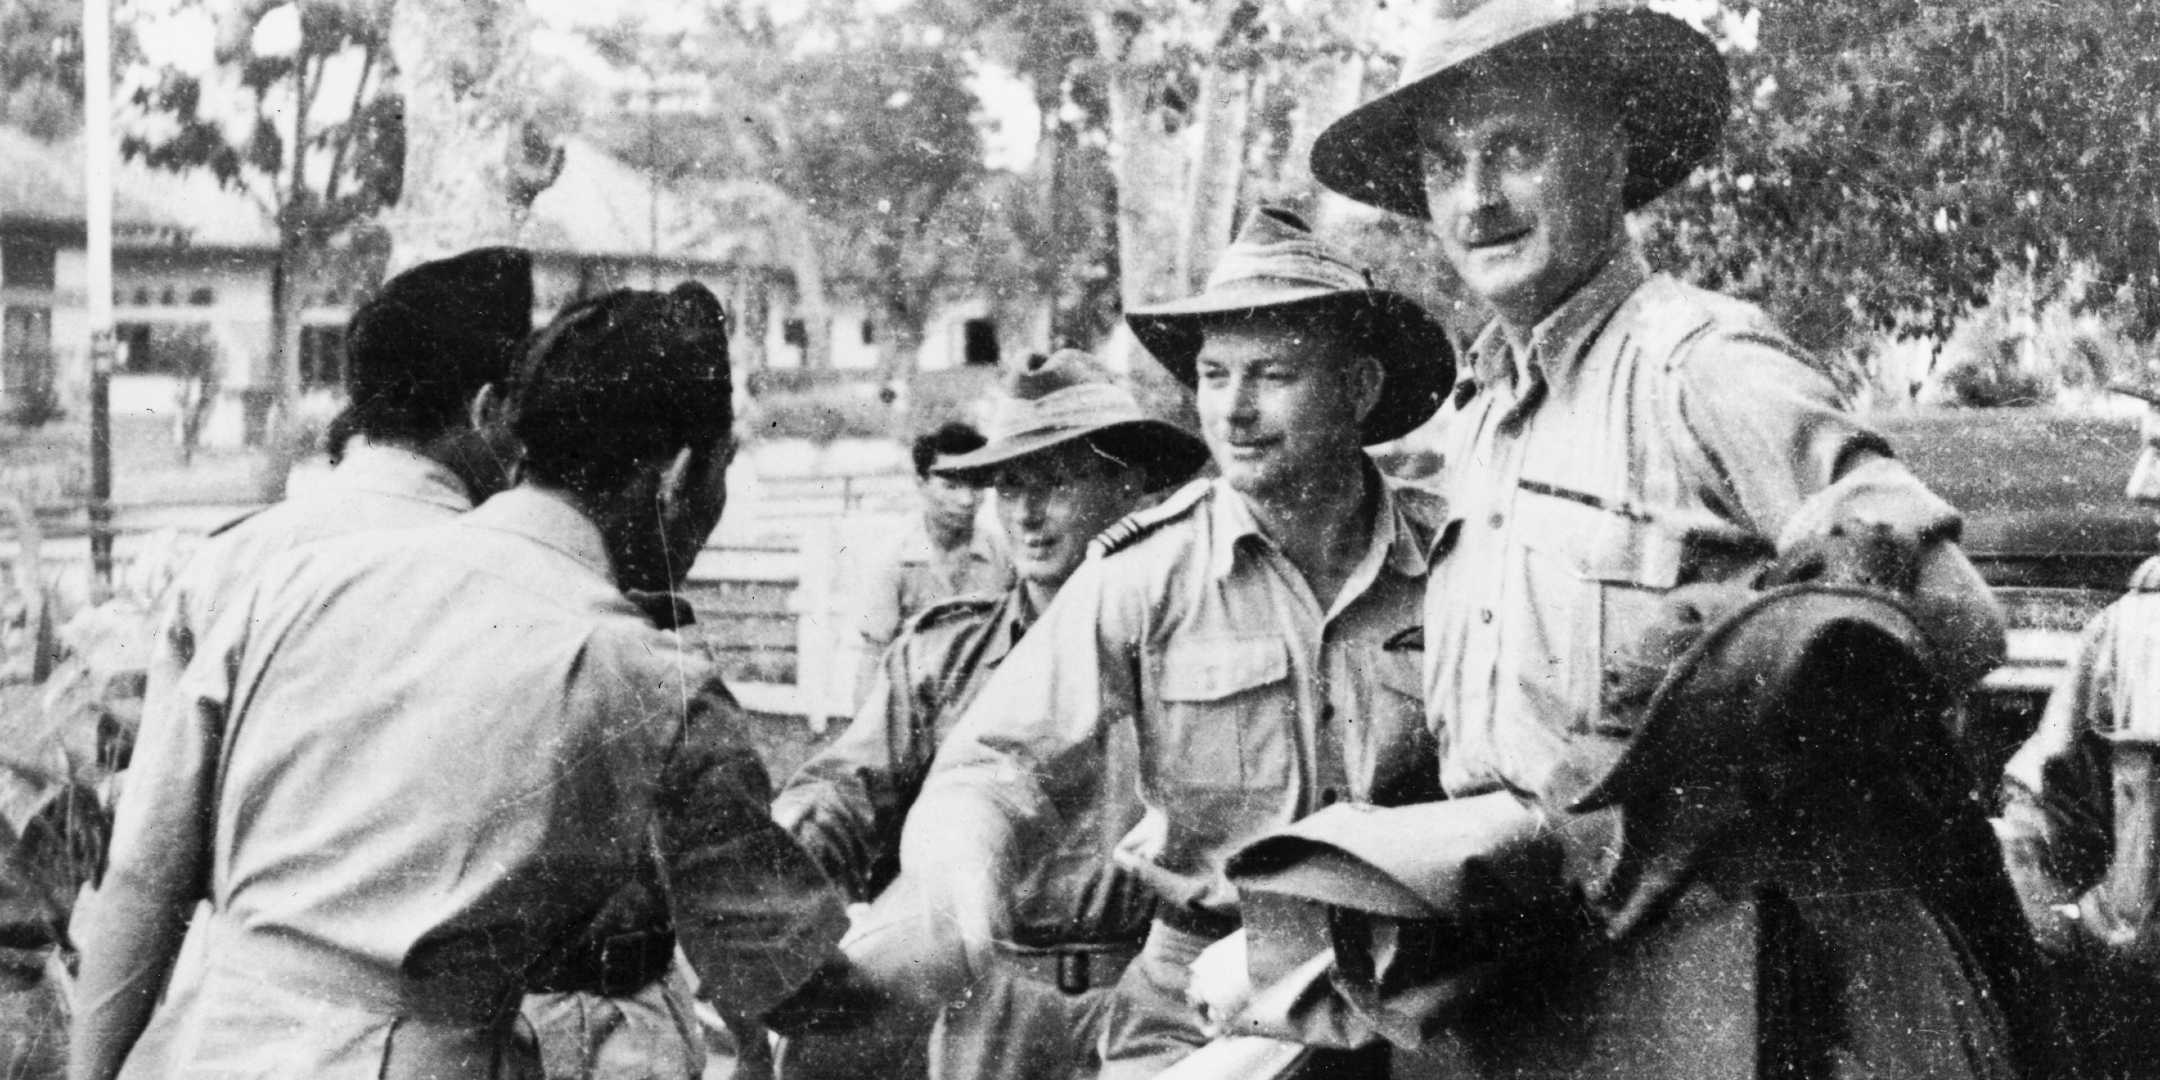 Australian military observers being welcomed by Republican officers in Yogyakarta on 14 September 1947. National Library of Australia.